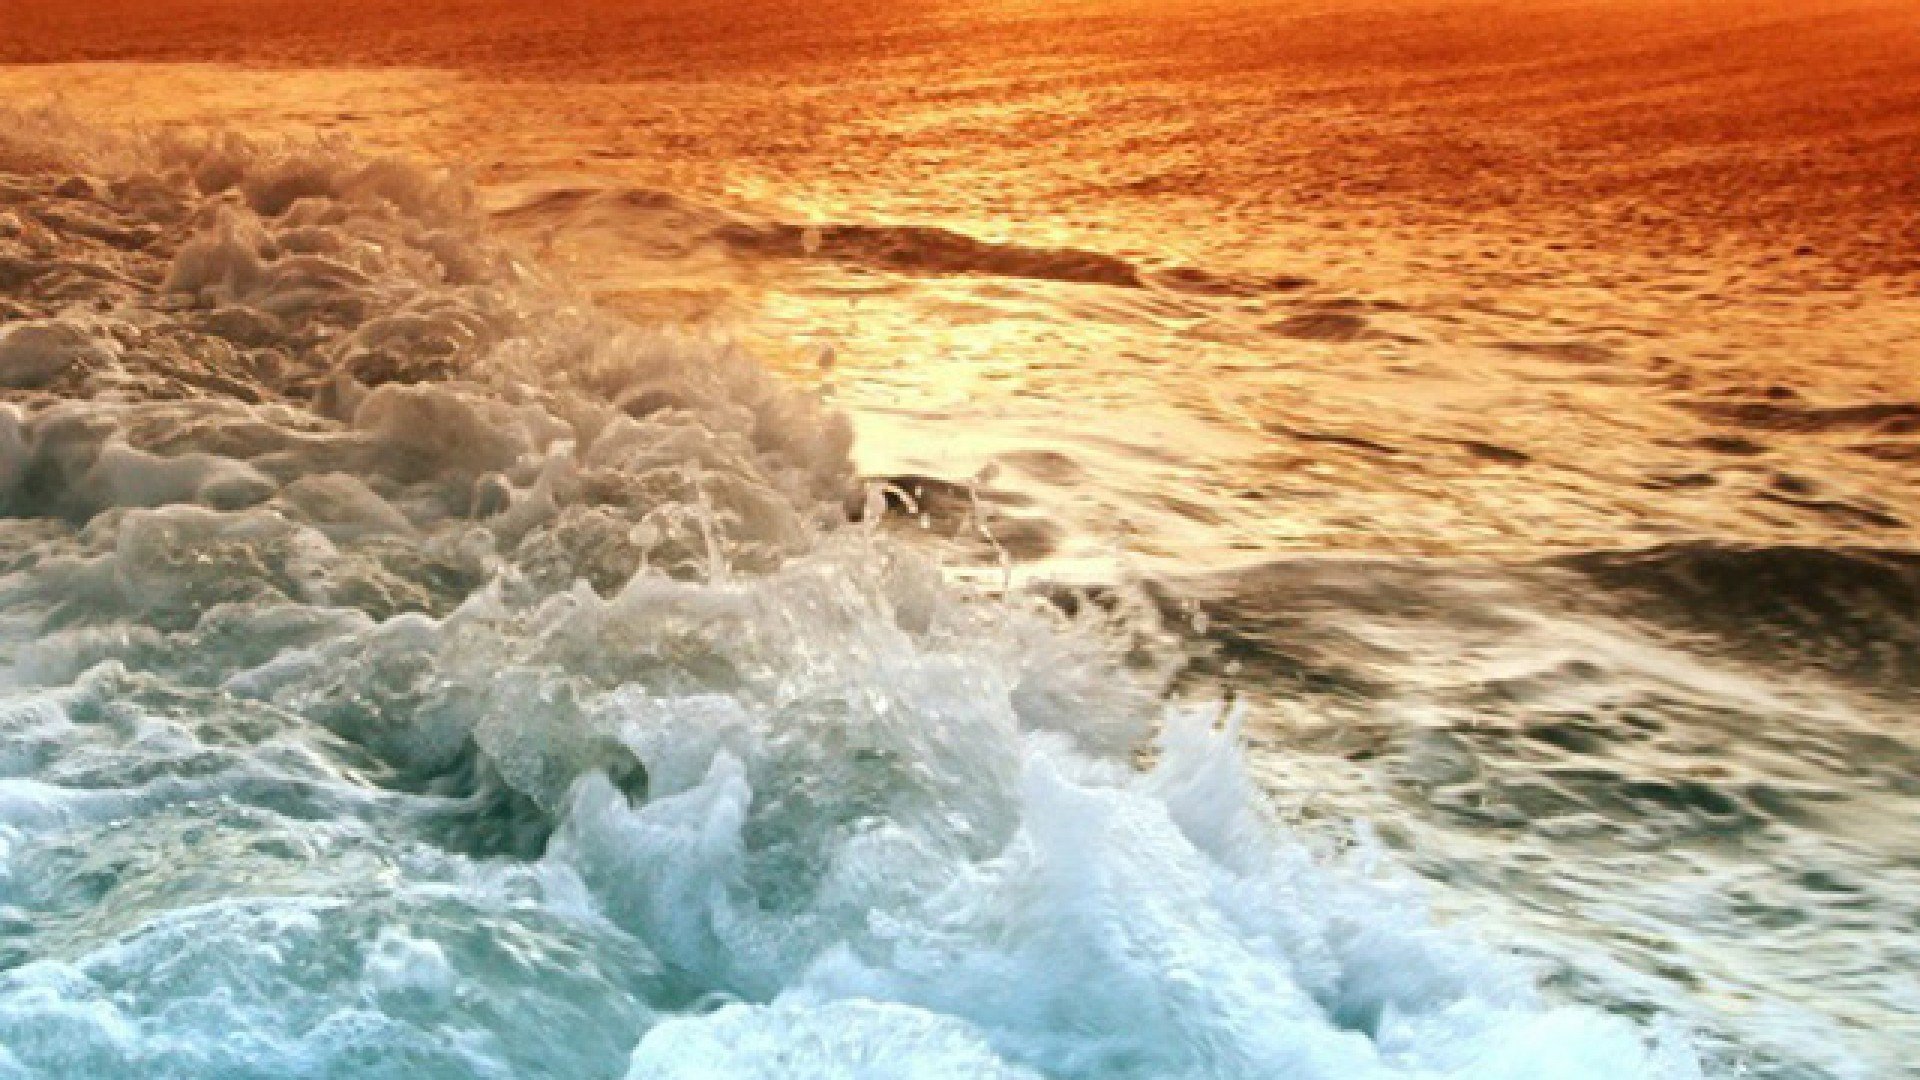 Download Ocean Beach Sunset Hd Iphone Wallpapers Part Two Hd 1920x1080